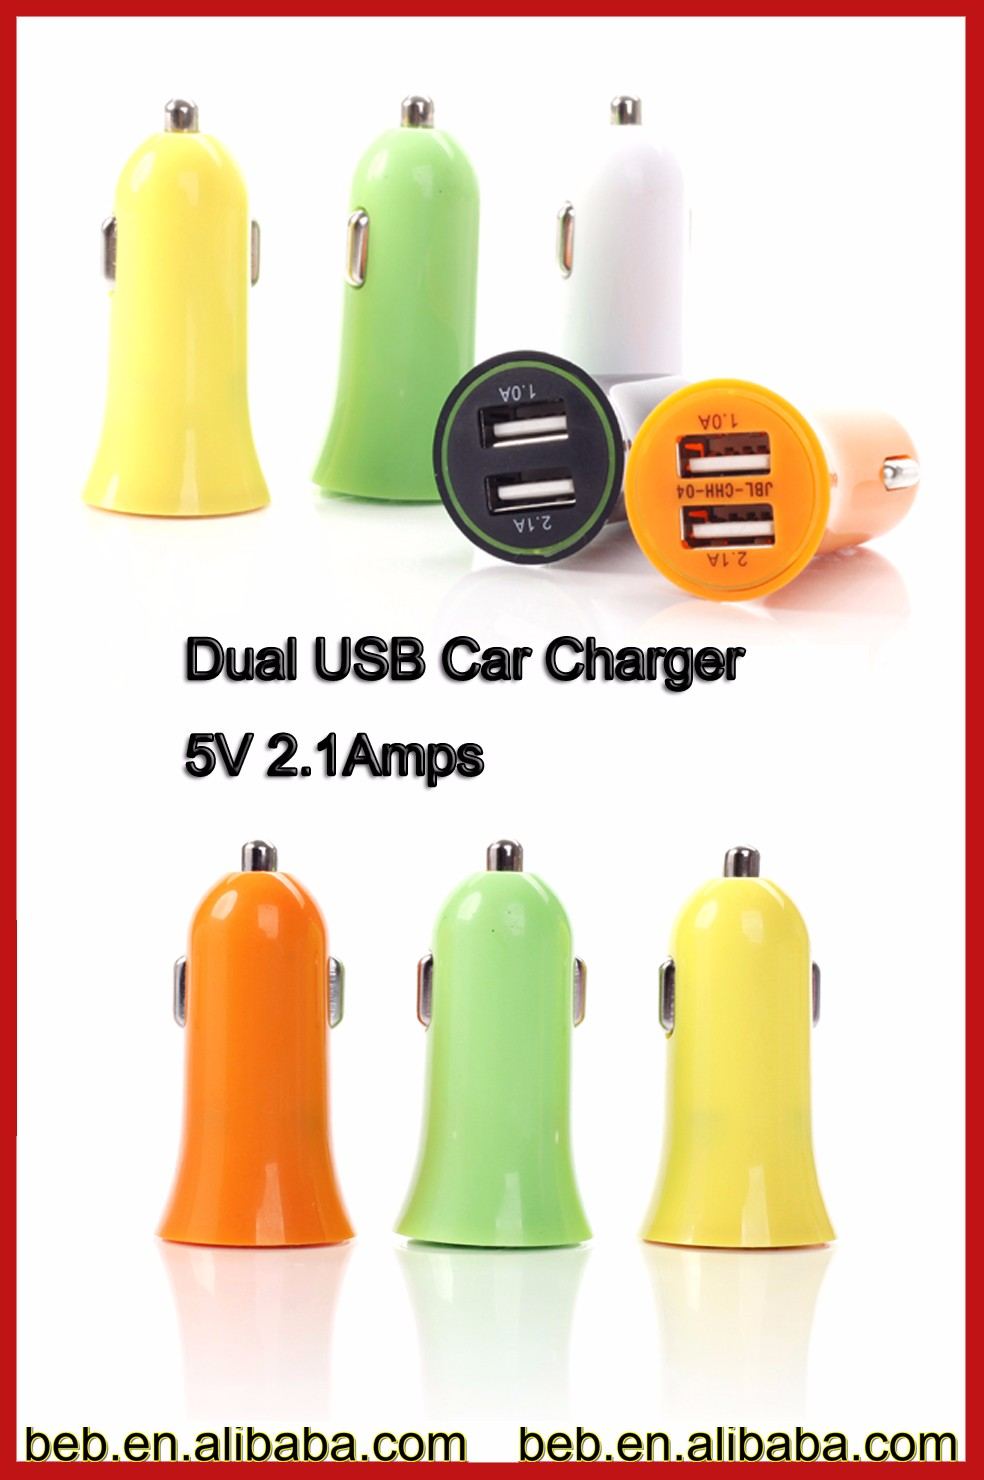 Manufacture usb car charger for ipad 2 3 4